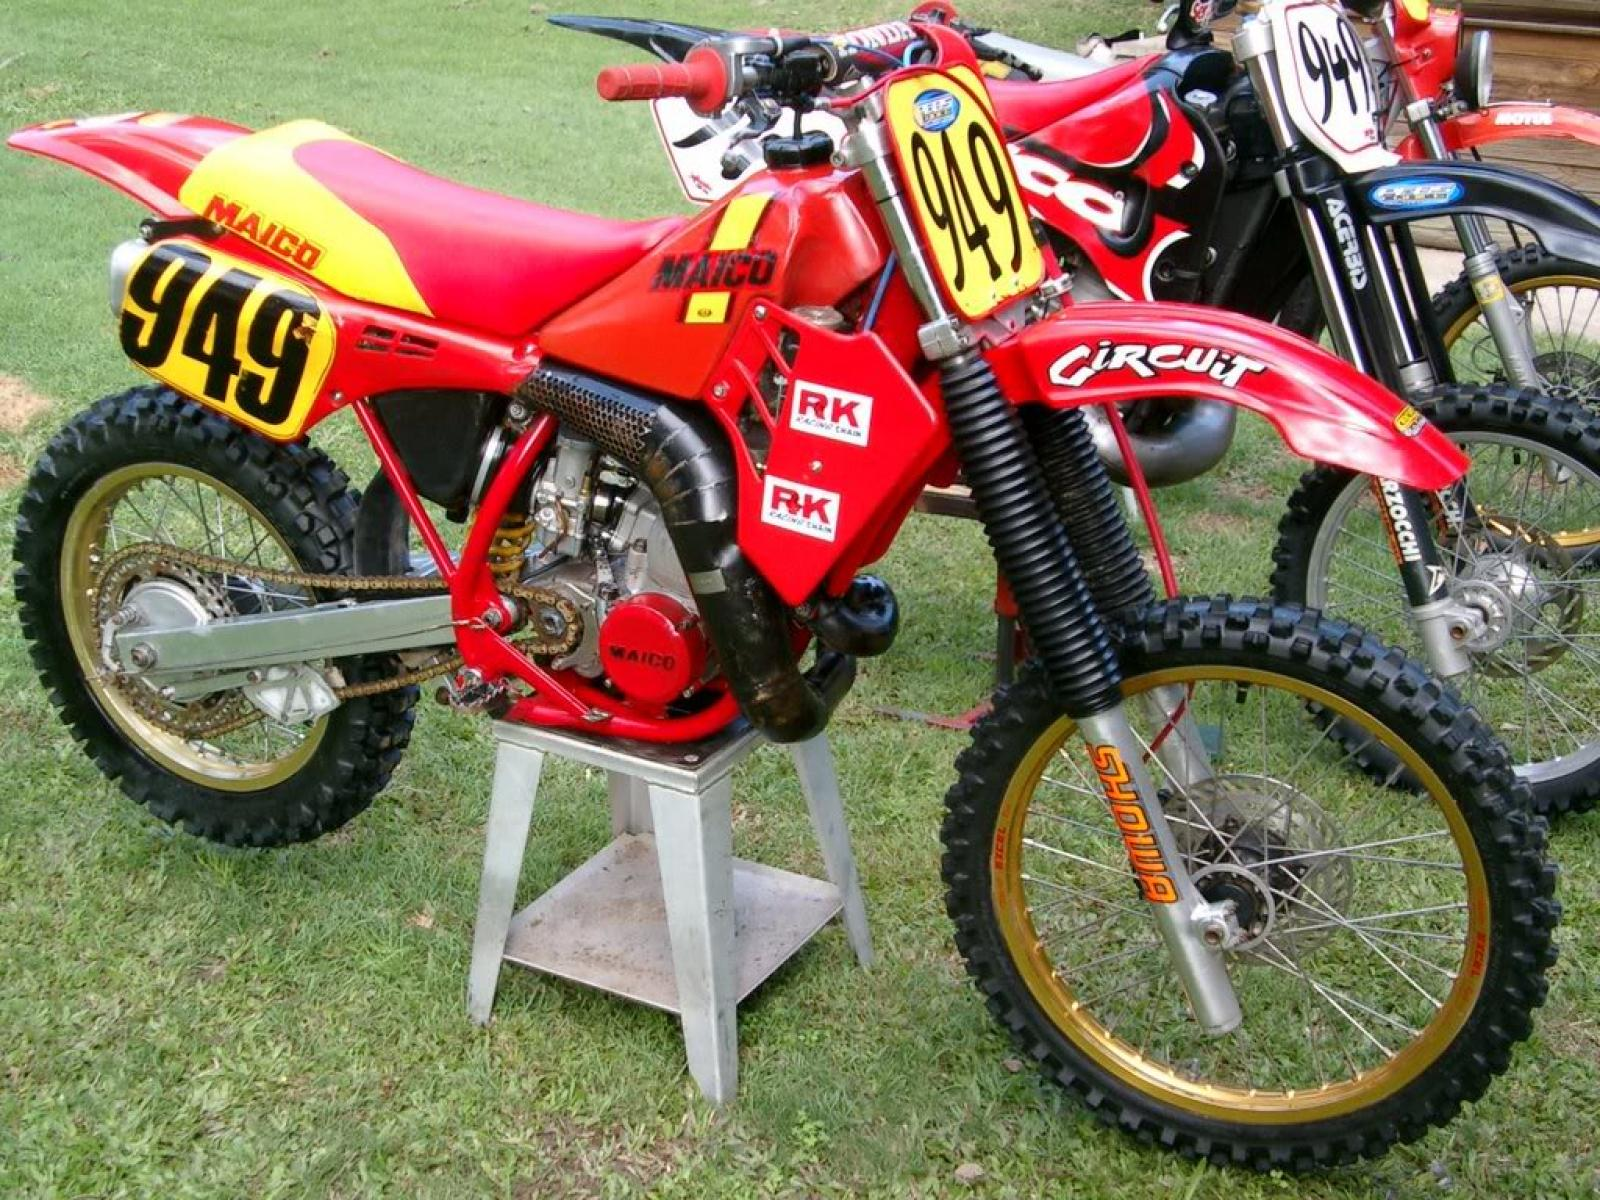 Maico GME 250 1984 images #102394